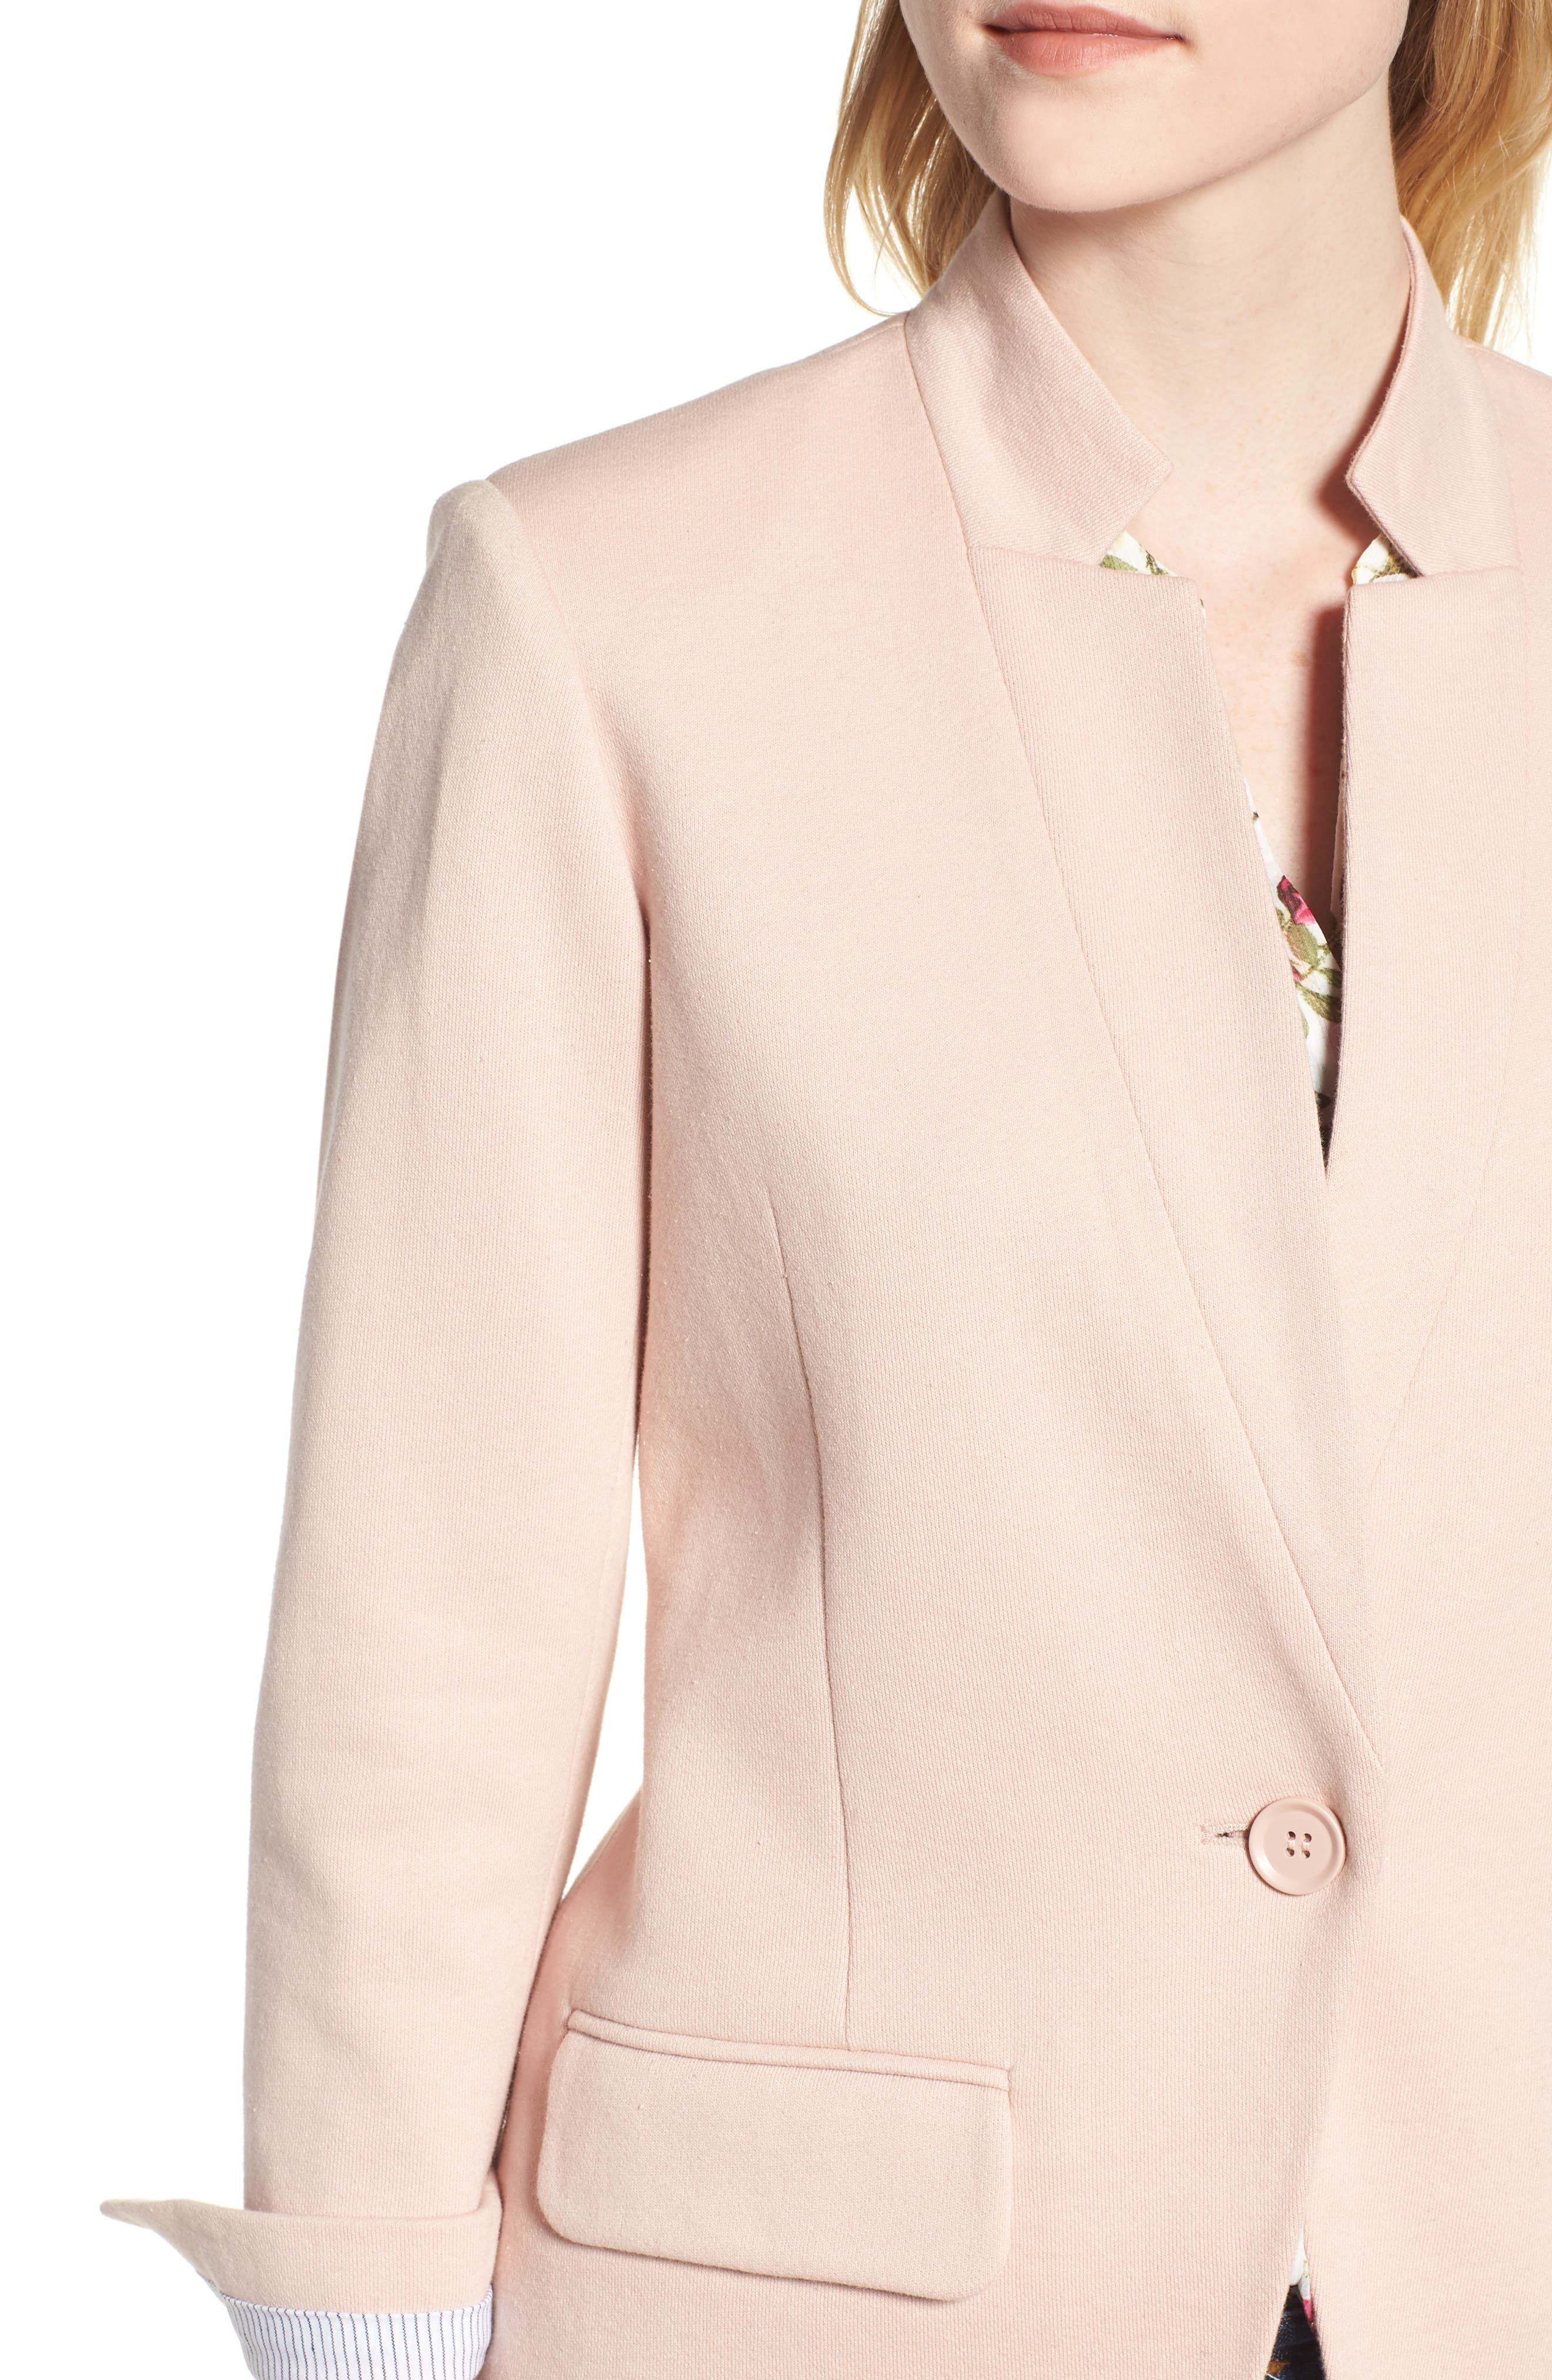 Cotton Blend Knit Blazer,                             Alternate thumbnail 4, color,                             Pink Smoke